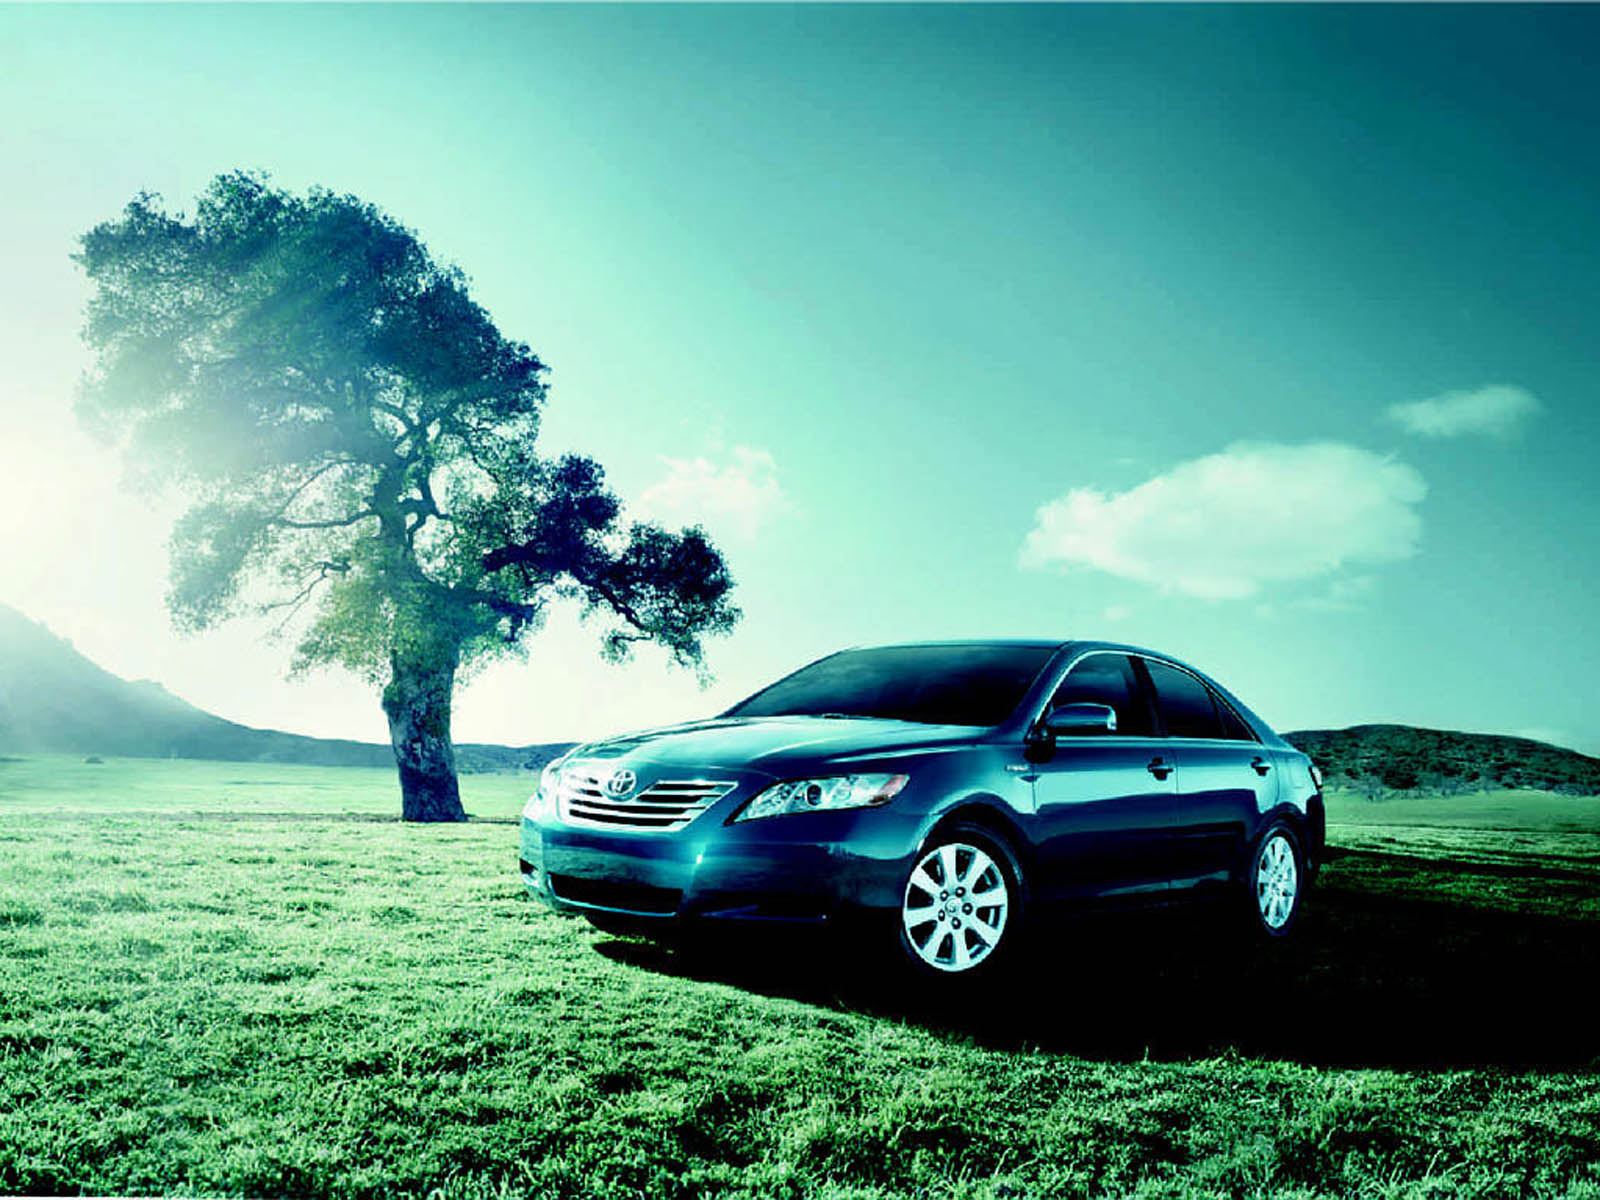 wallpapers: Toyota Camry Car Wallpapers